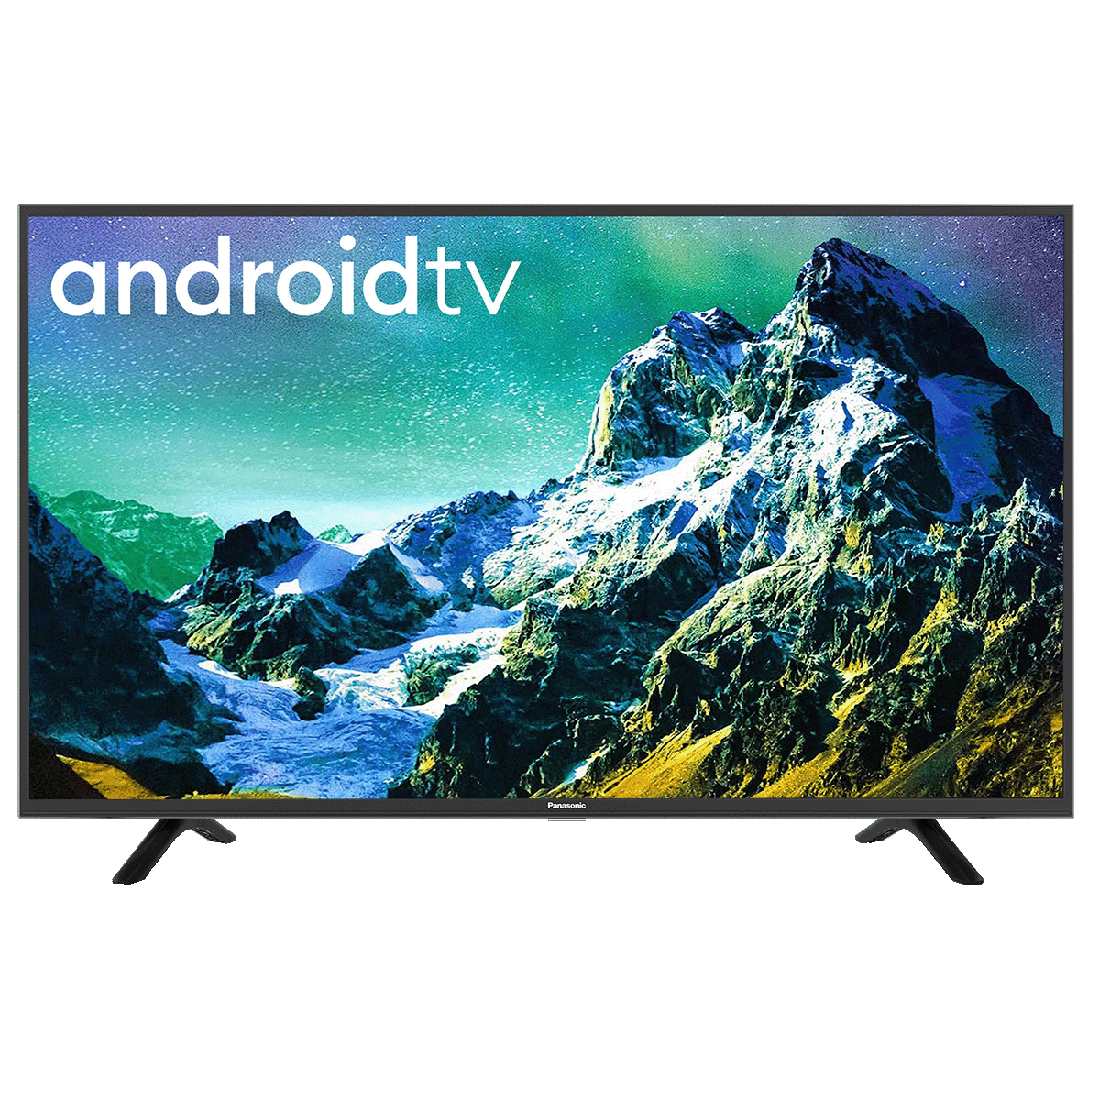 Panasonic Viera 108cm (43 Inch) 4K Ultra HD Android Smart TV (TH-43HX635DX, Black)